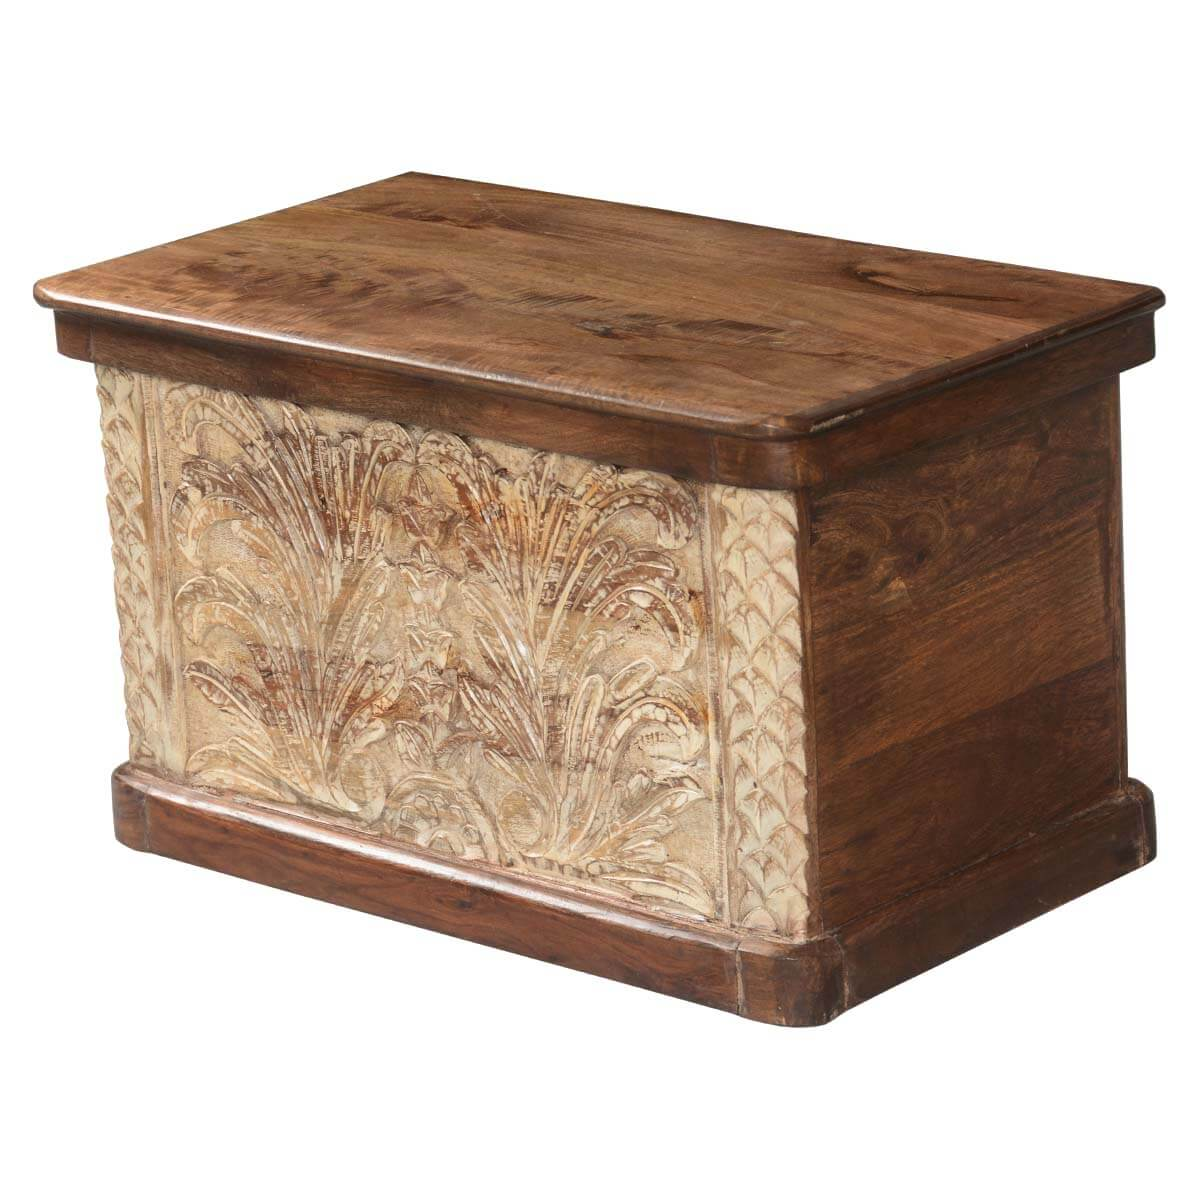 Winter Ferns Solid Acacia Wood Coffee Table Storage Chest. Ferns Solid Acacia Wood Coffee Table Storage Chest